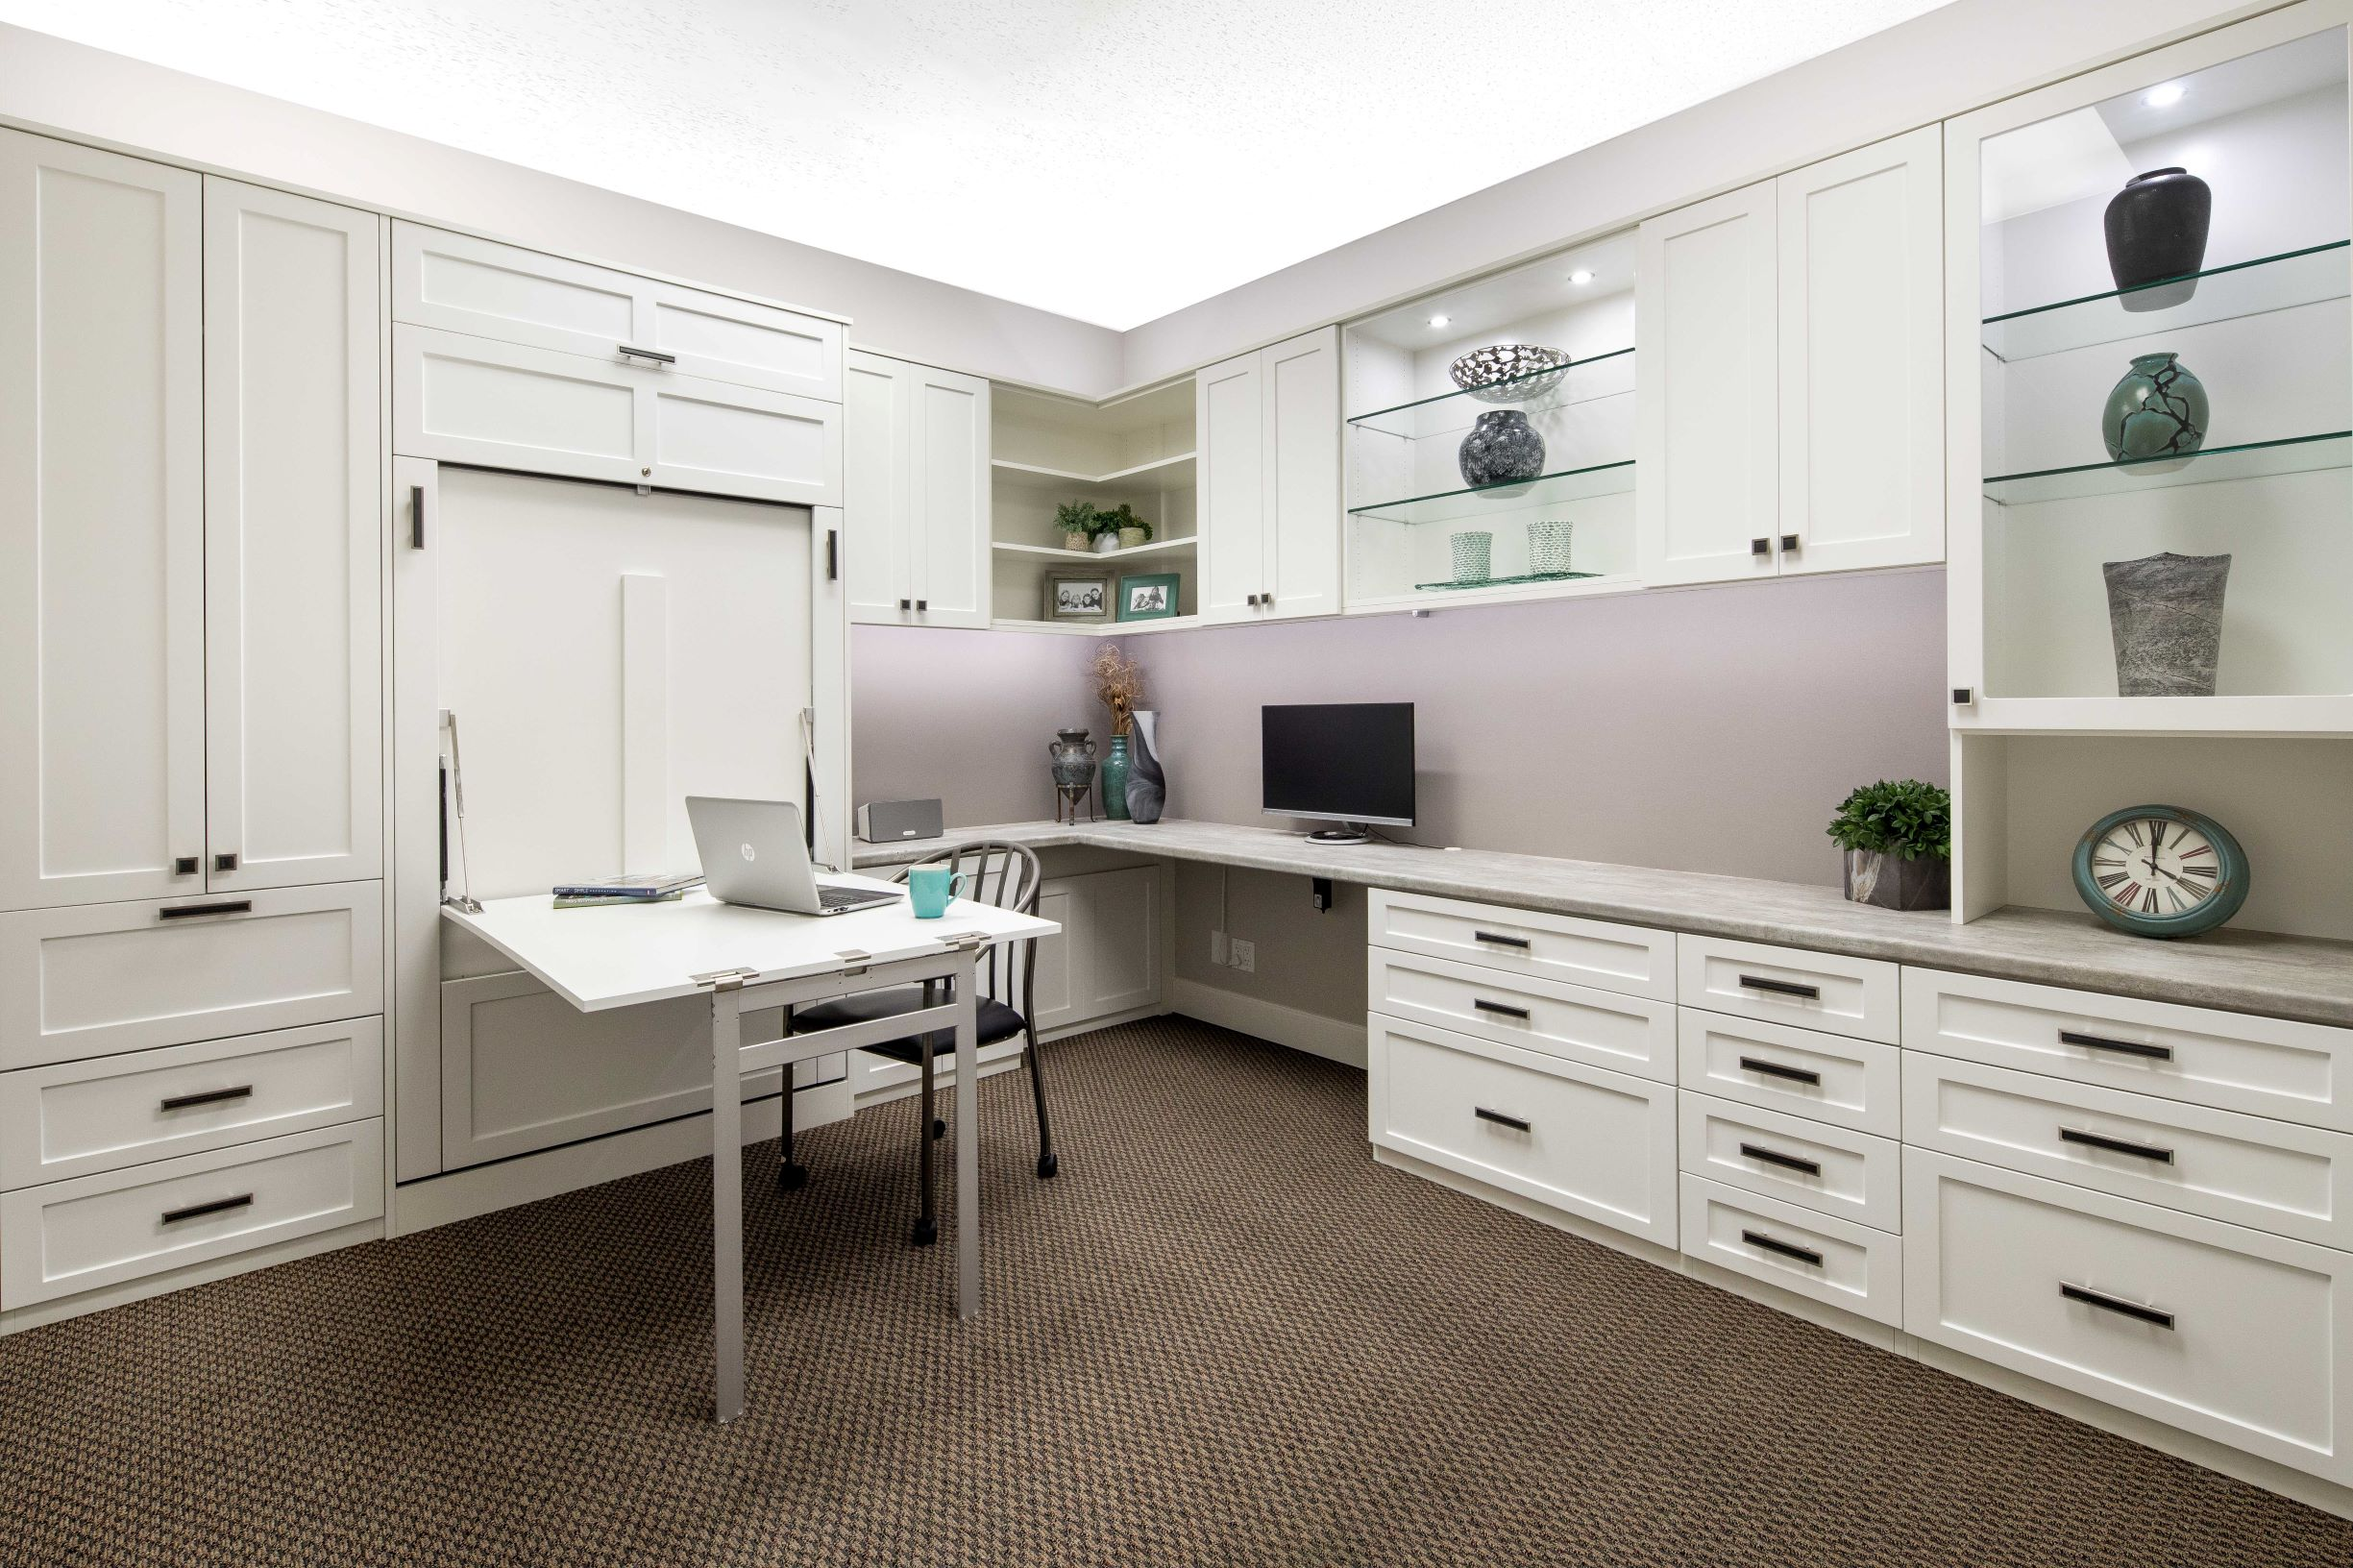 2017-01-06_Home Office with Wall Bed_White (19)-PX